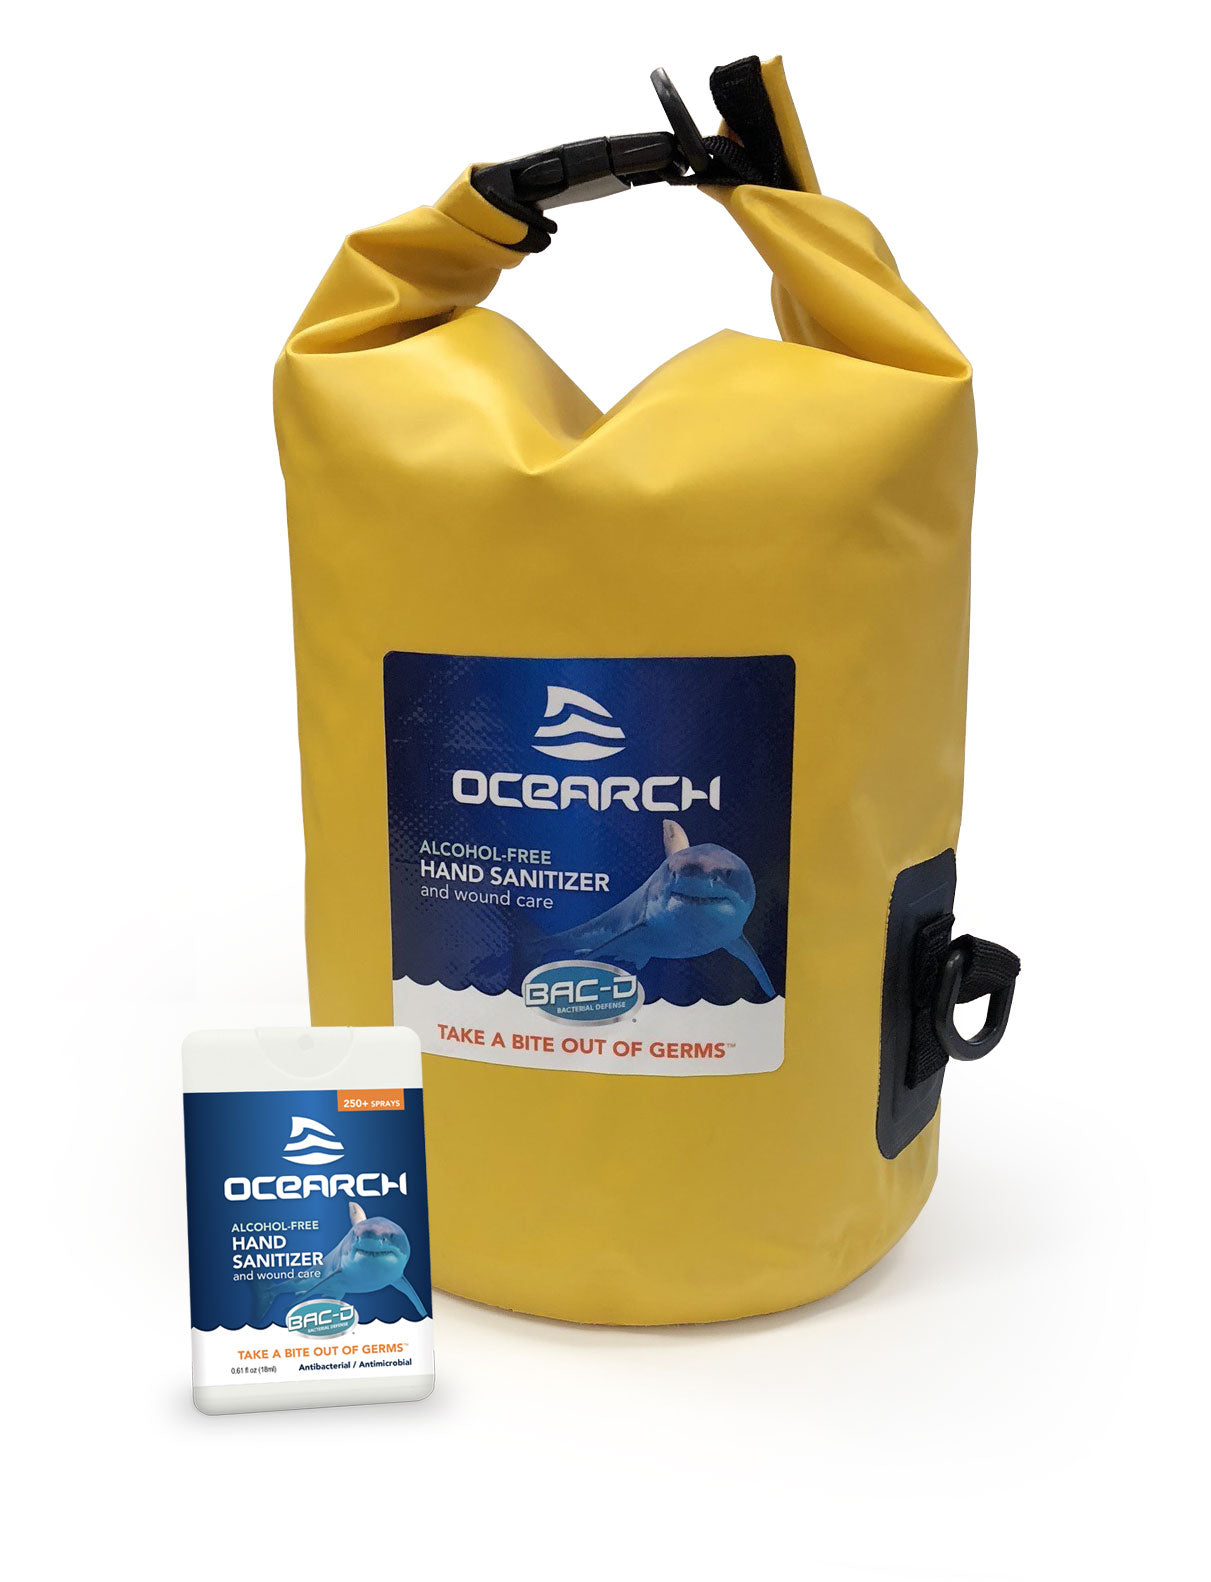 OCEARCH® 18ml Hand Sanitizer and Wound Care Spray - 72 Piece Mariner's Pack with Free Waterproof Bag